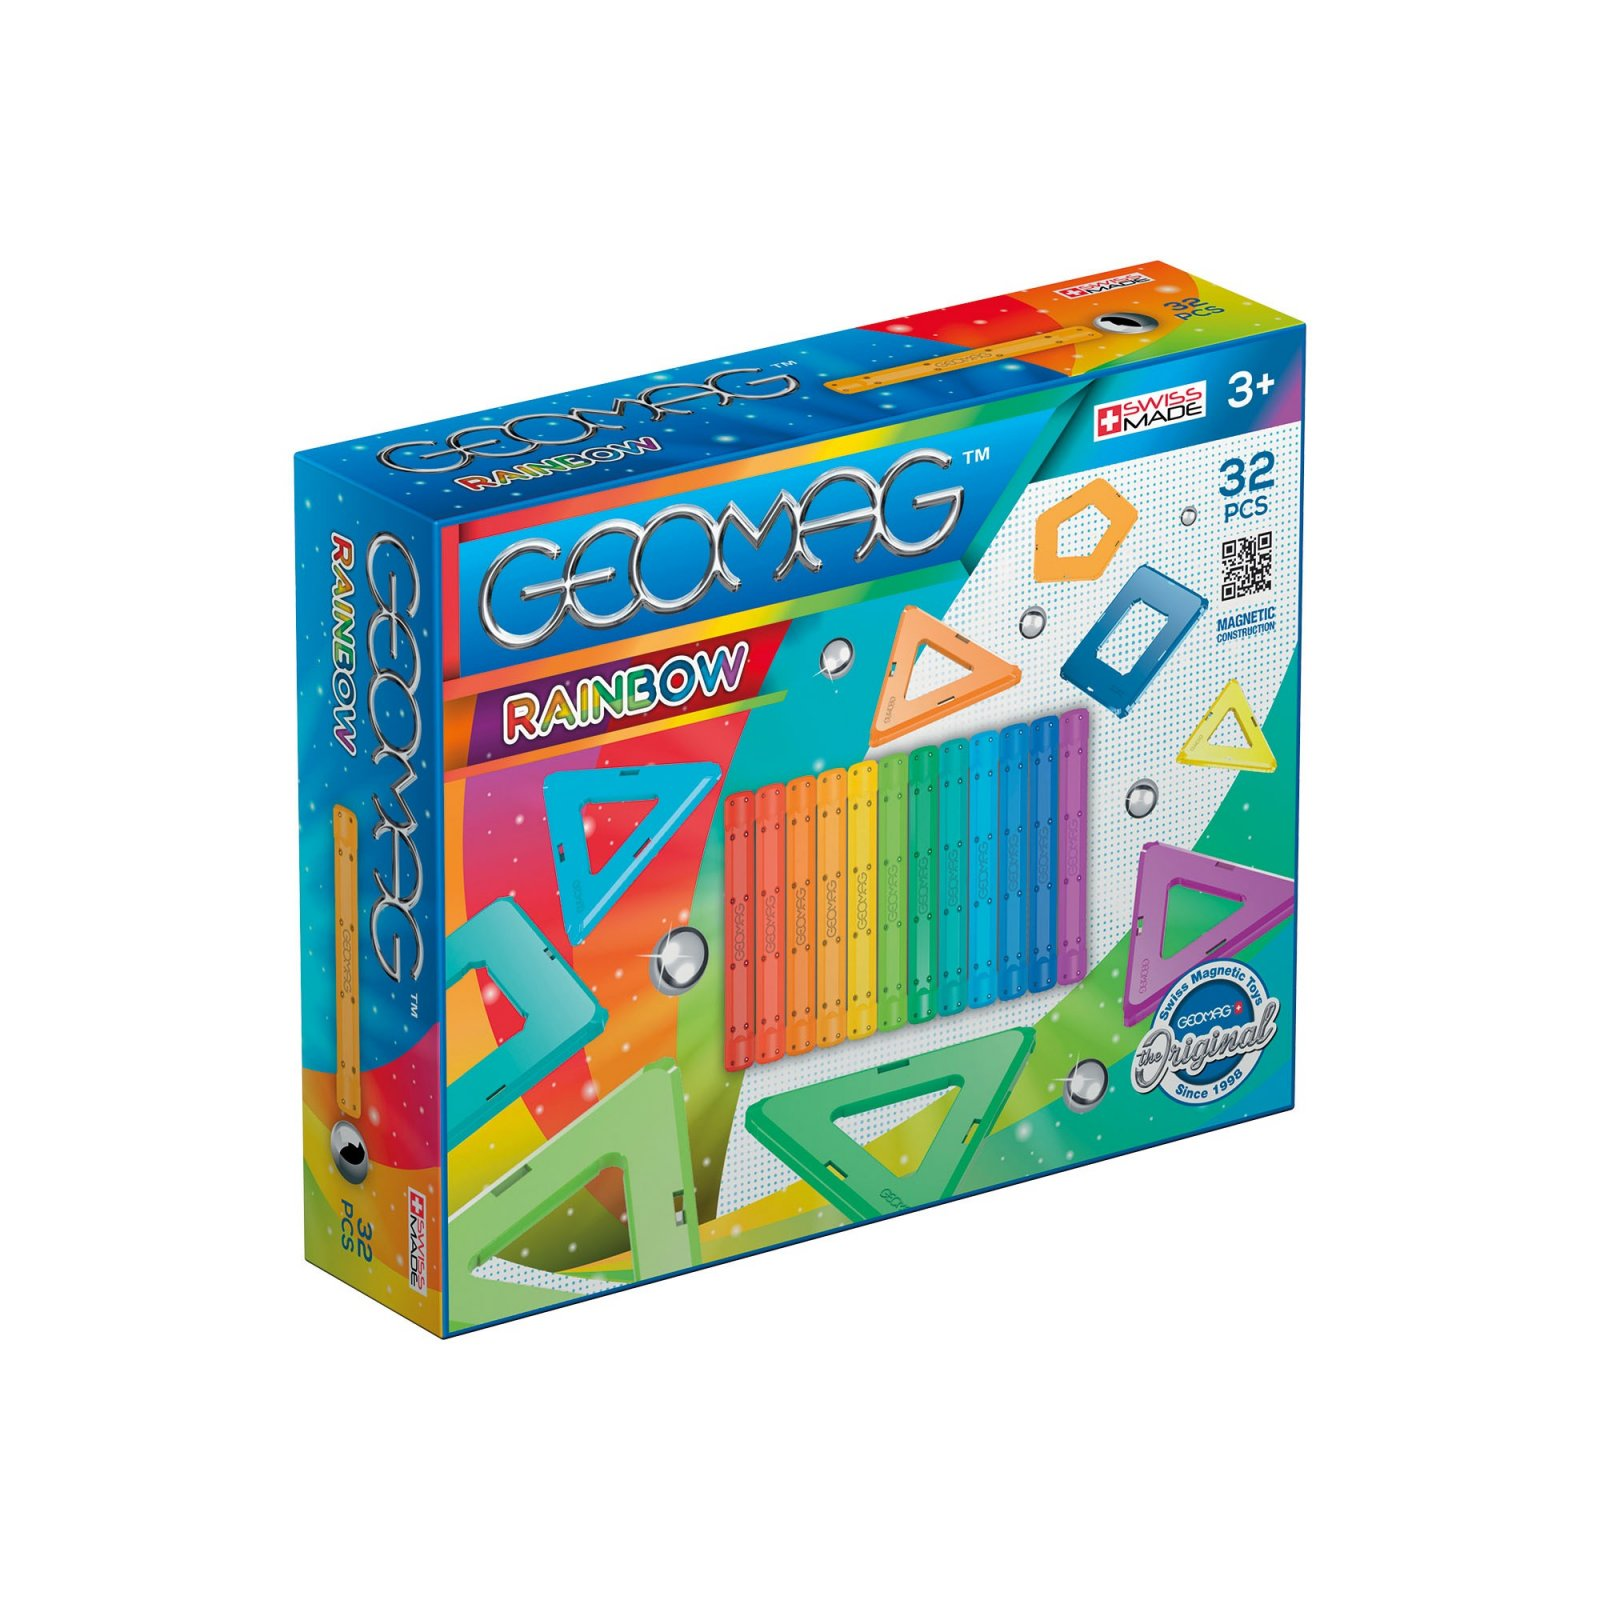 Geomag Rainbow Magnetic Building Set